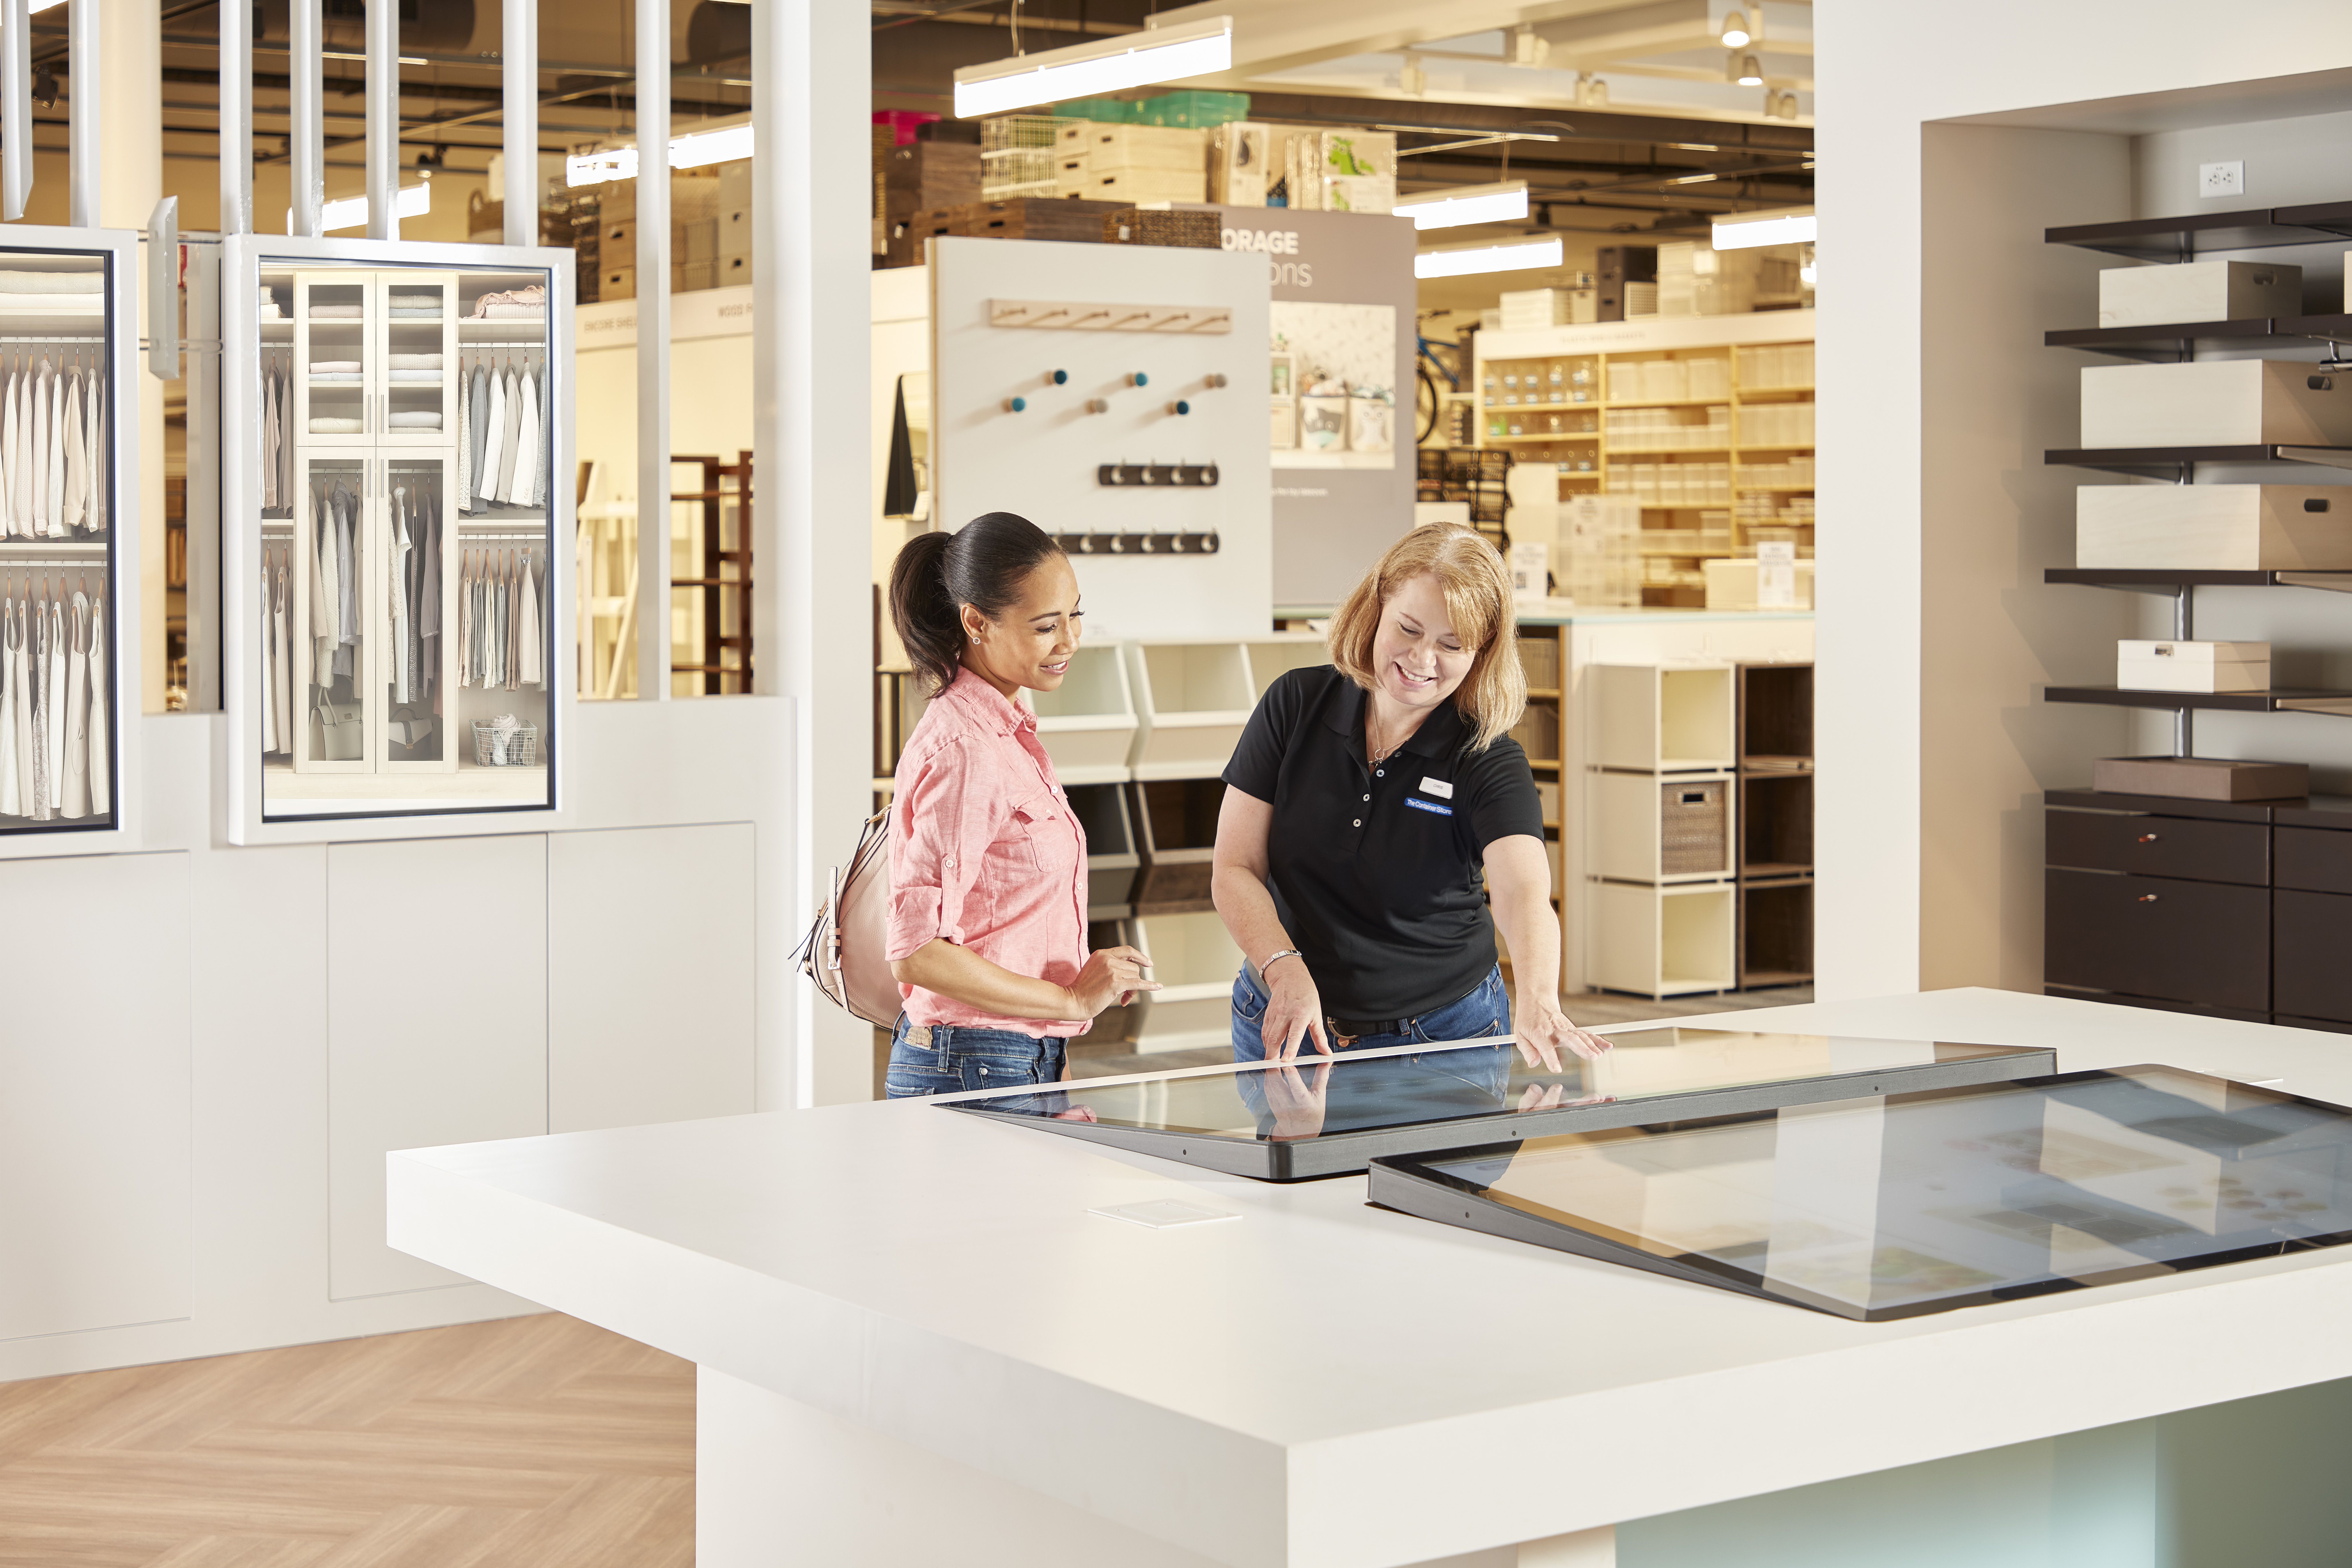 The Container Store Reveals New Tech Savvy Store Design ...